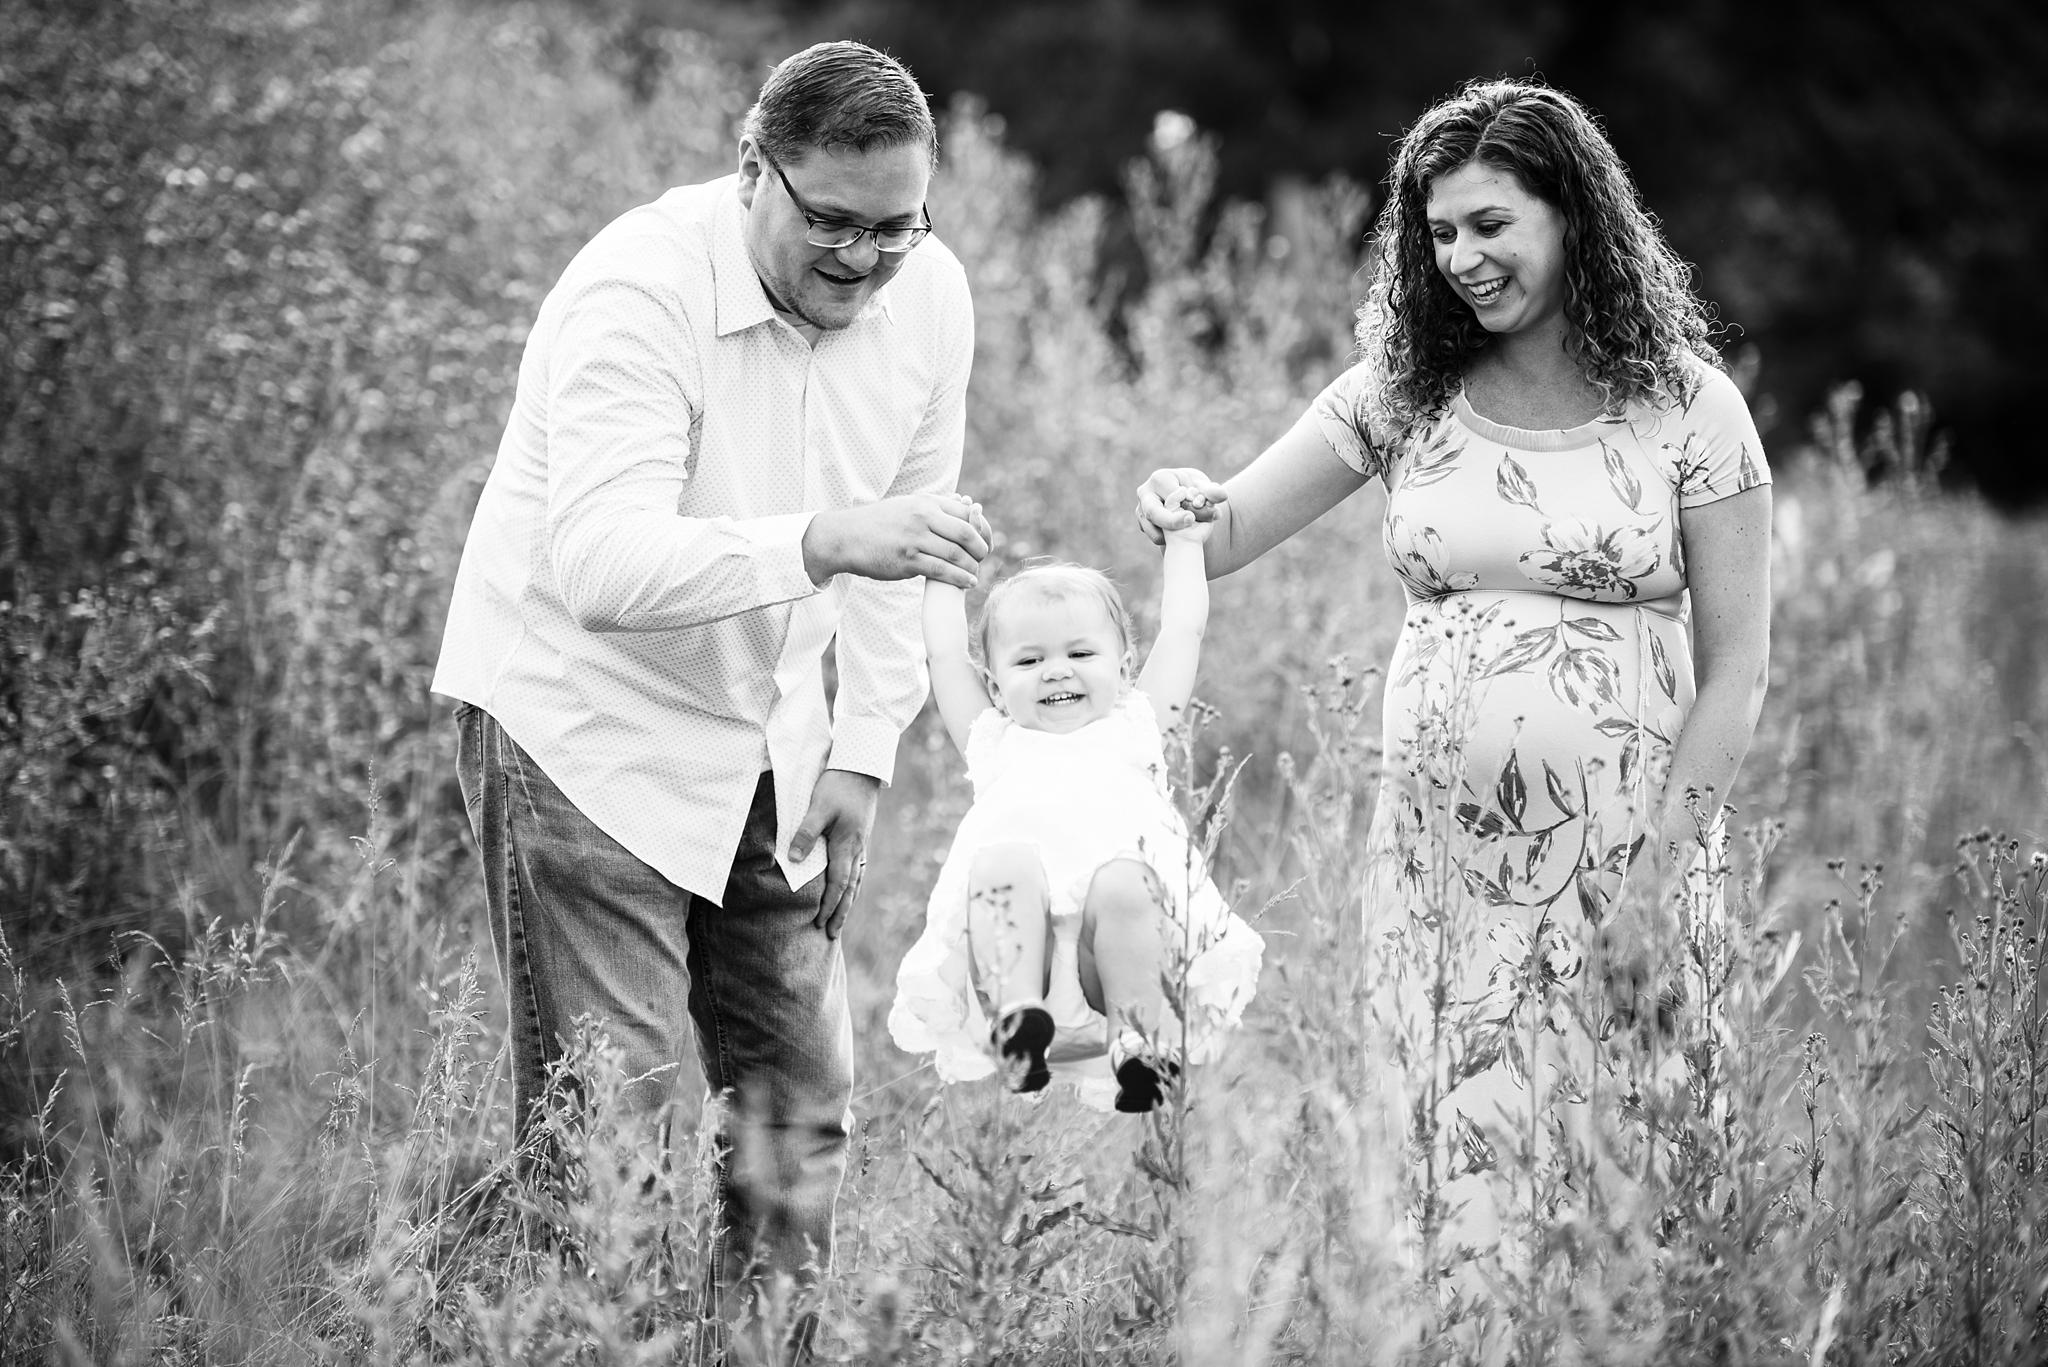 Pittsburgh Rachel Rossetti Maternity Photography Lifestyle Family_0042.jpg